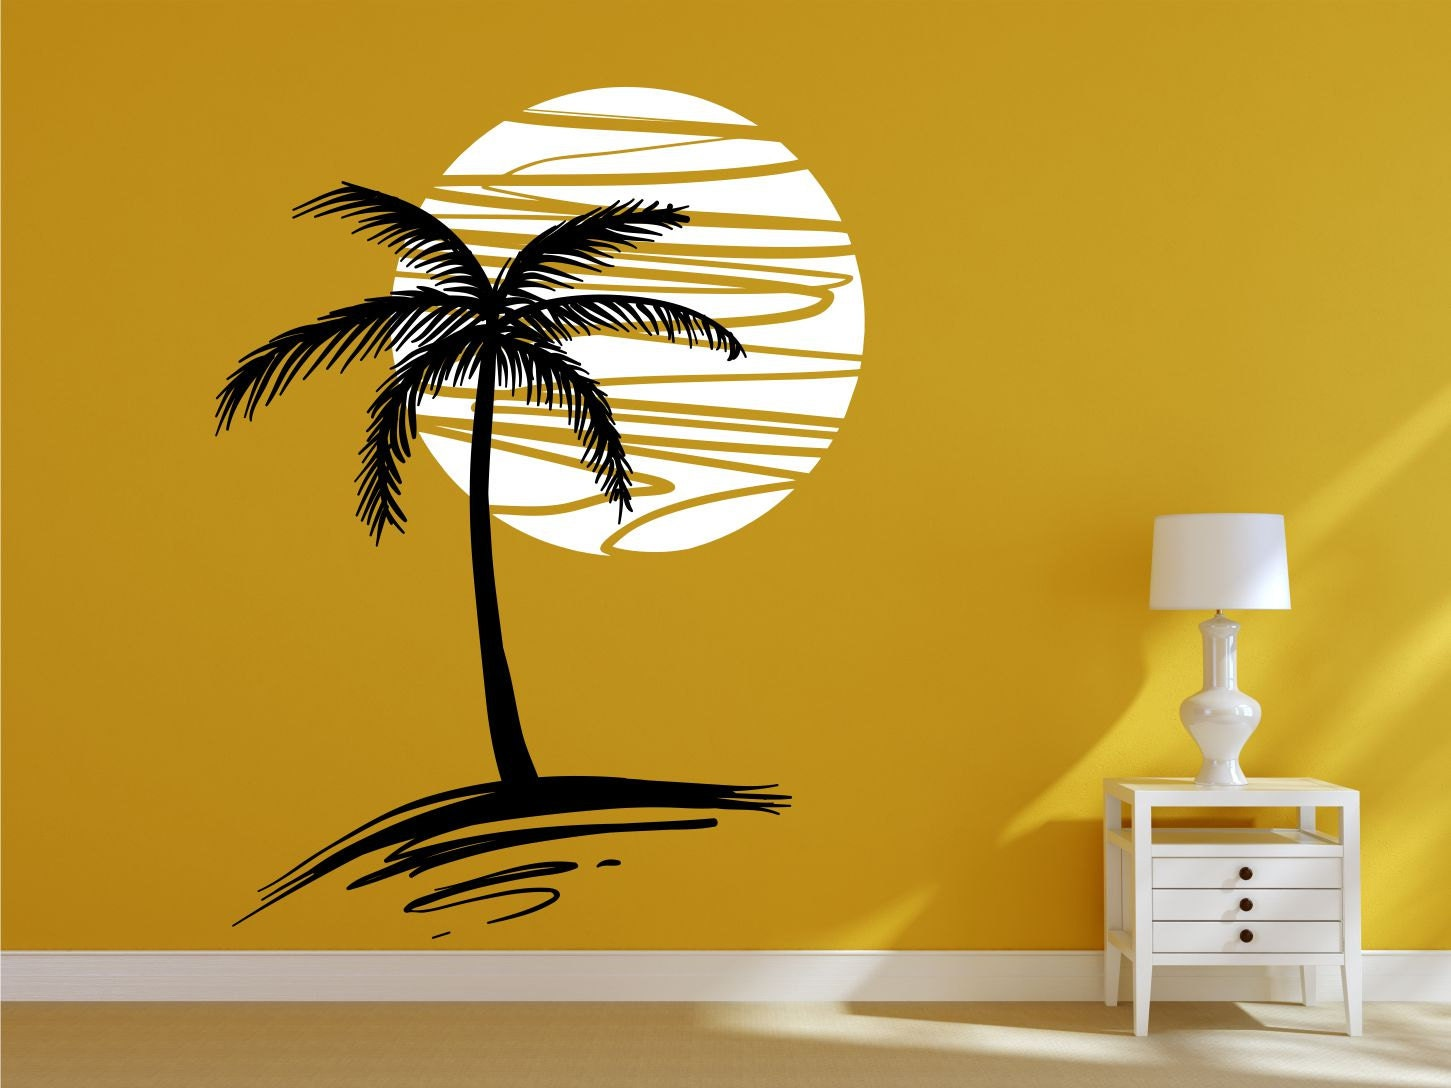 Outstanding Palm Tree Wall Decals Pictures Designs – Dievoon